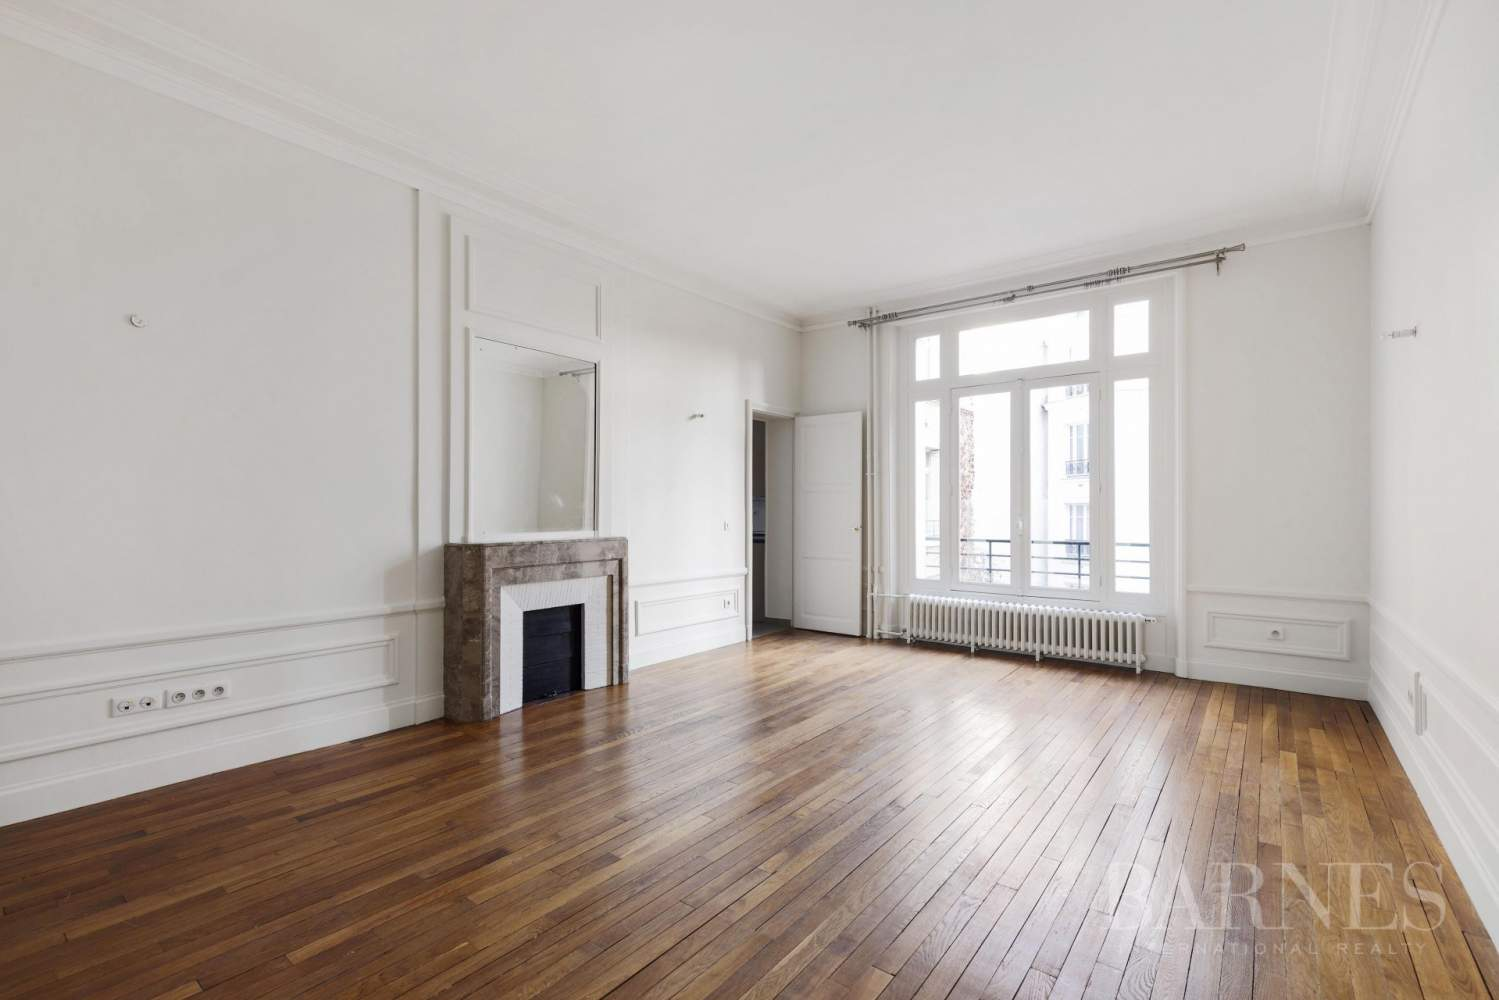 EXCLUSIVE - 8-ROOM APARTMENT FOR SALE - RENOVATED 1930s BUILDING - NEUILLY/PASTEUR picture 15